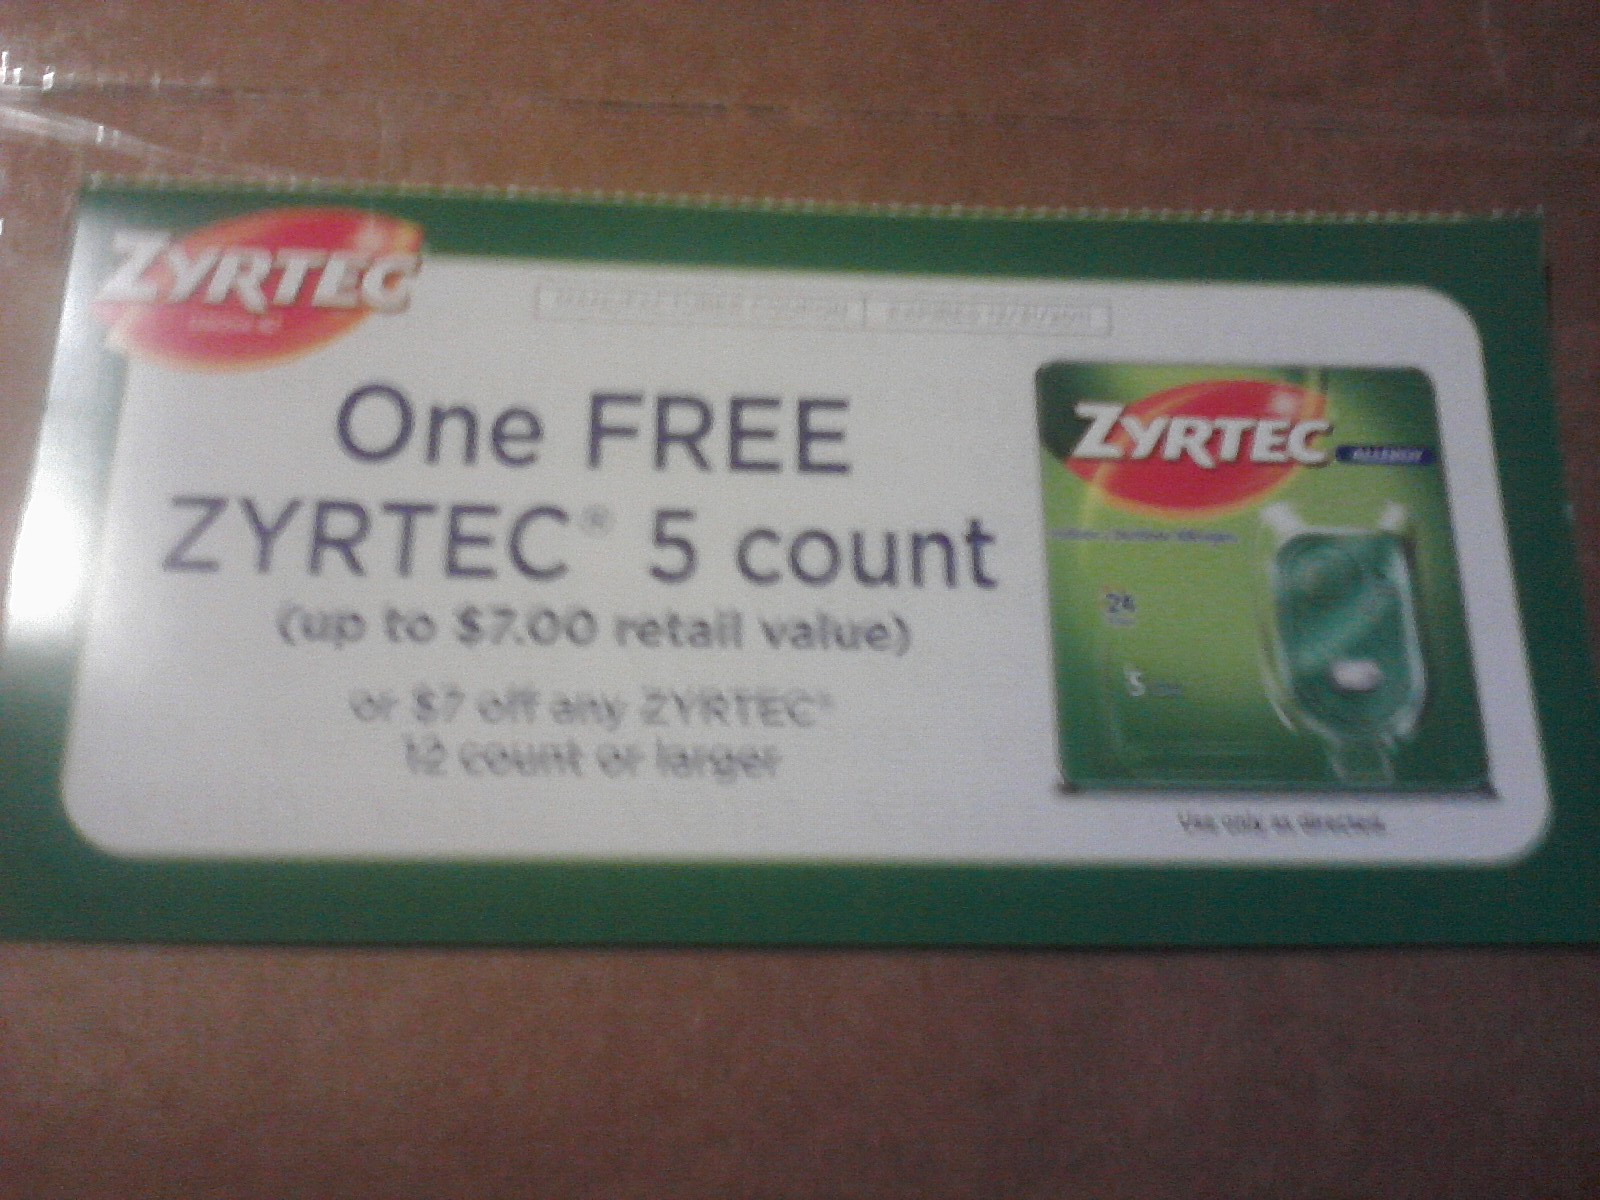 Zyrtec d coupons printable 2018